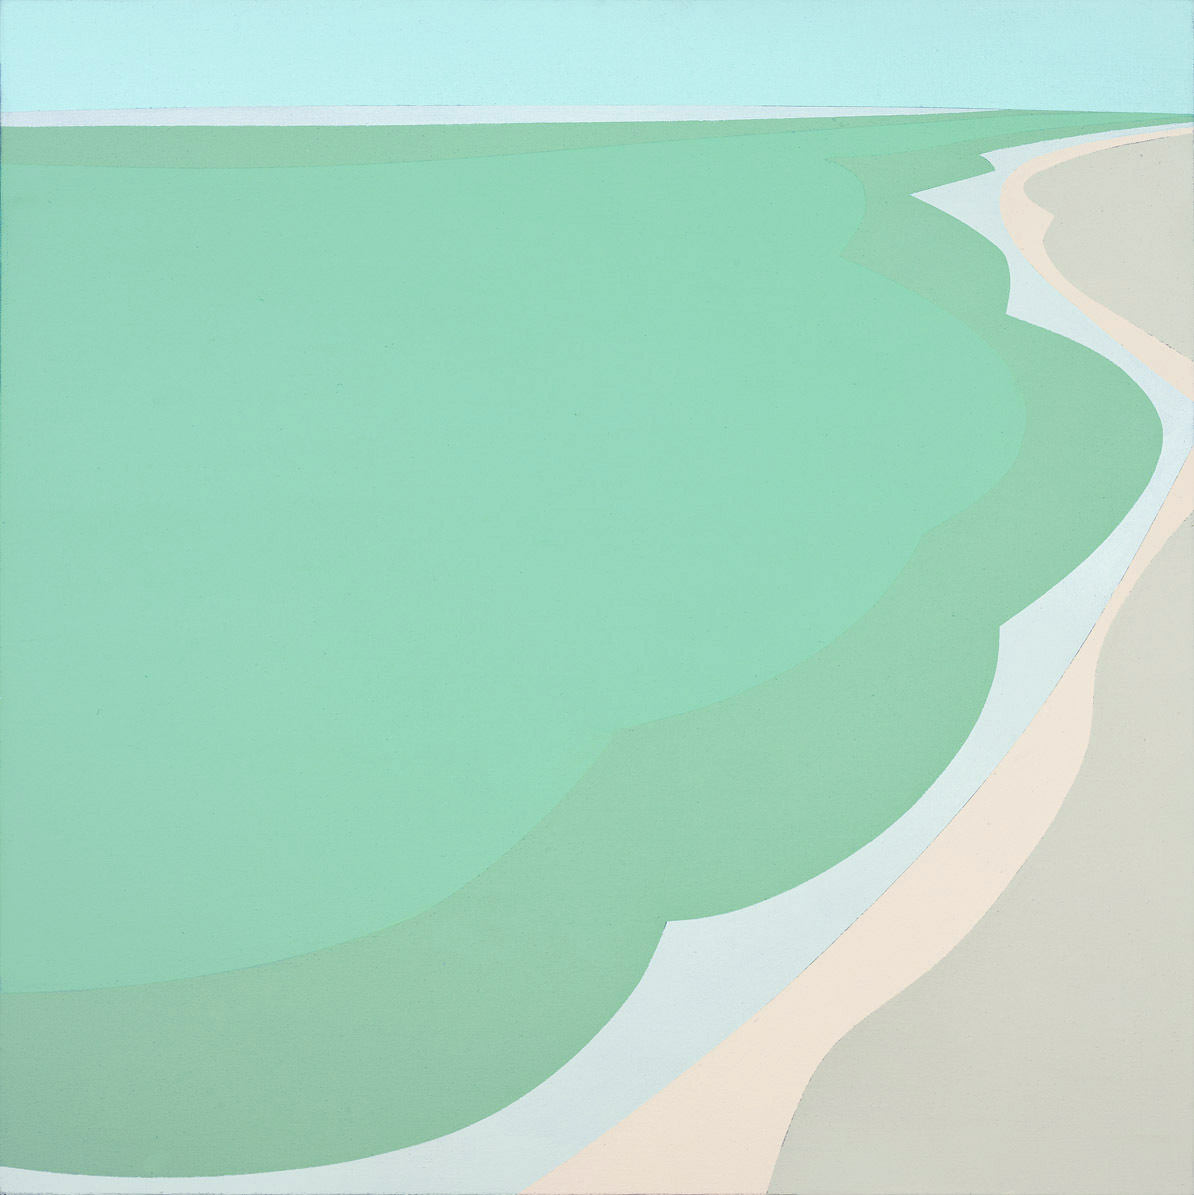 Untitled , 1970  acrylic on canvas 30 x 30 inches; 76.2 x 76.2 centimeters